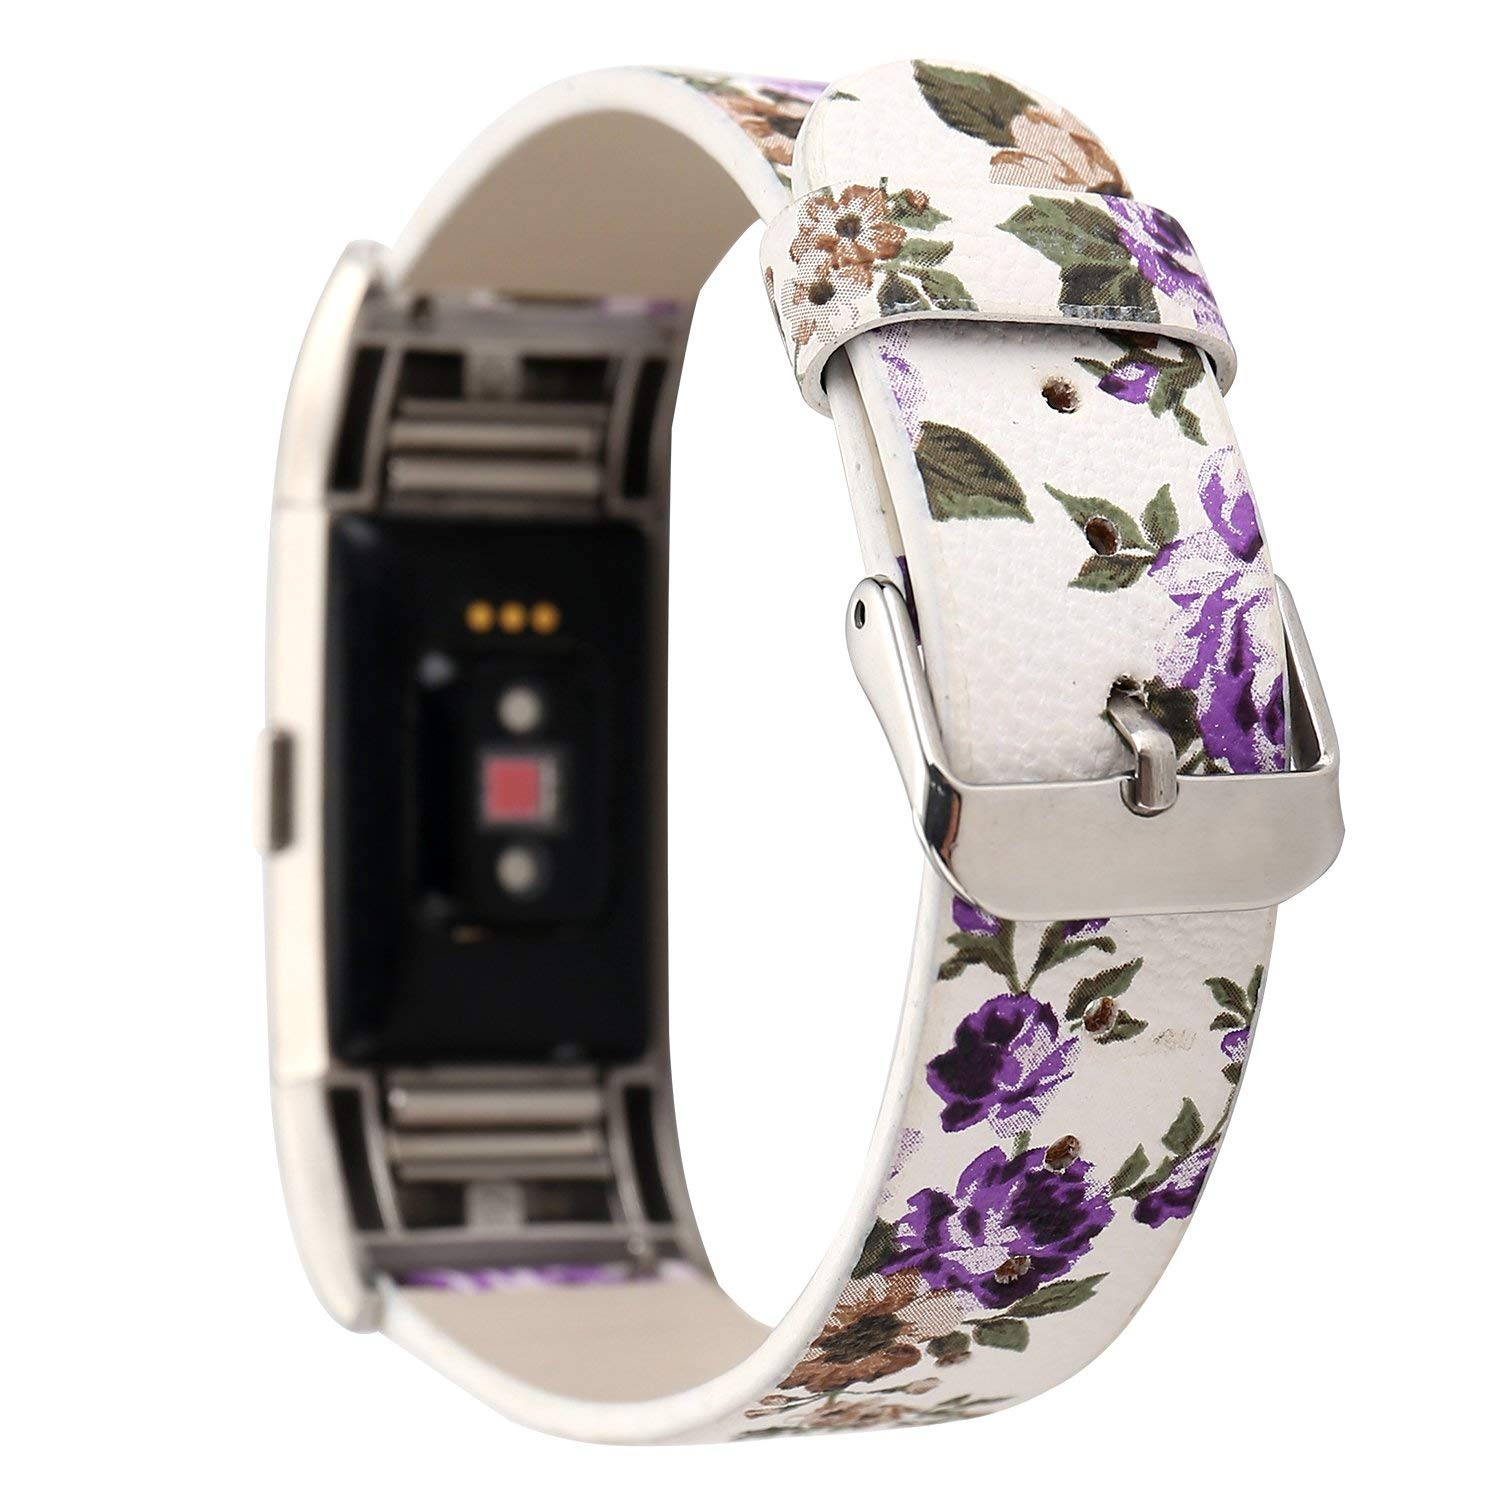 For Fitbit Charge 2 Band - SHANSHUIYIPIN Fitbit Charge 2 Strap for Women ,Genuine Leather Replacement Bands for Fitbit Charge 2 ,Fitness Replacement Bands for Fitbit Charge 2 (Violet)